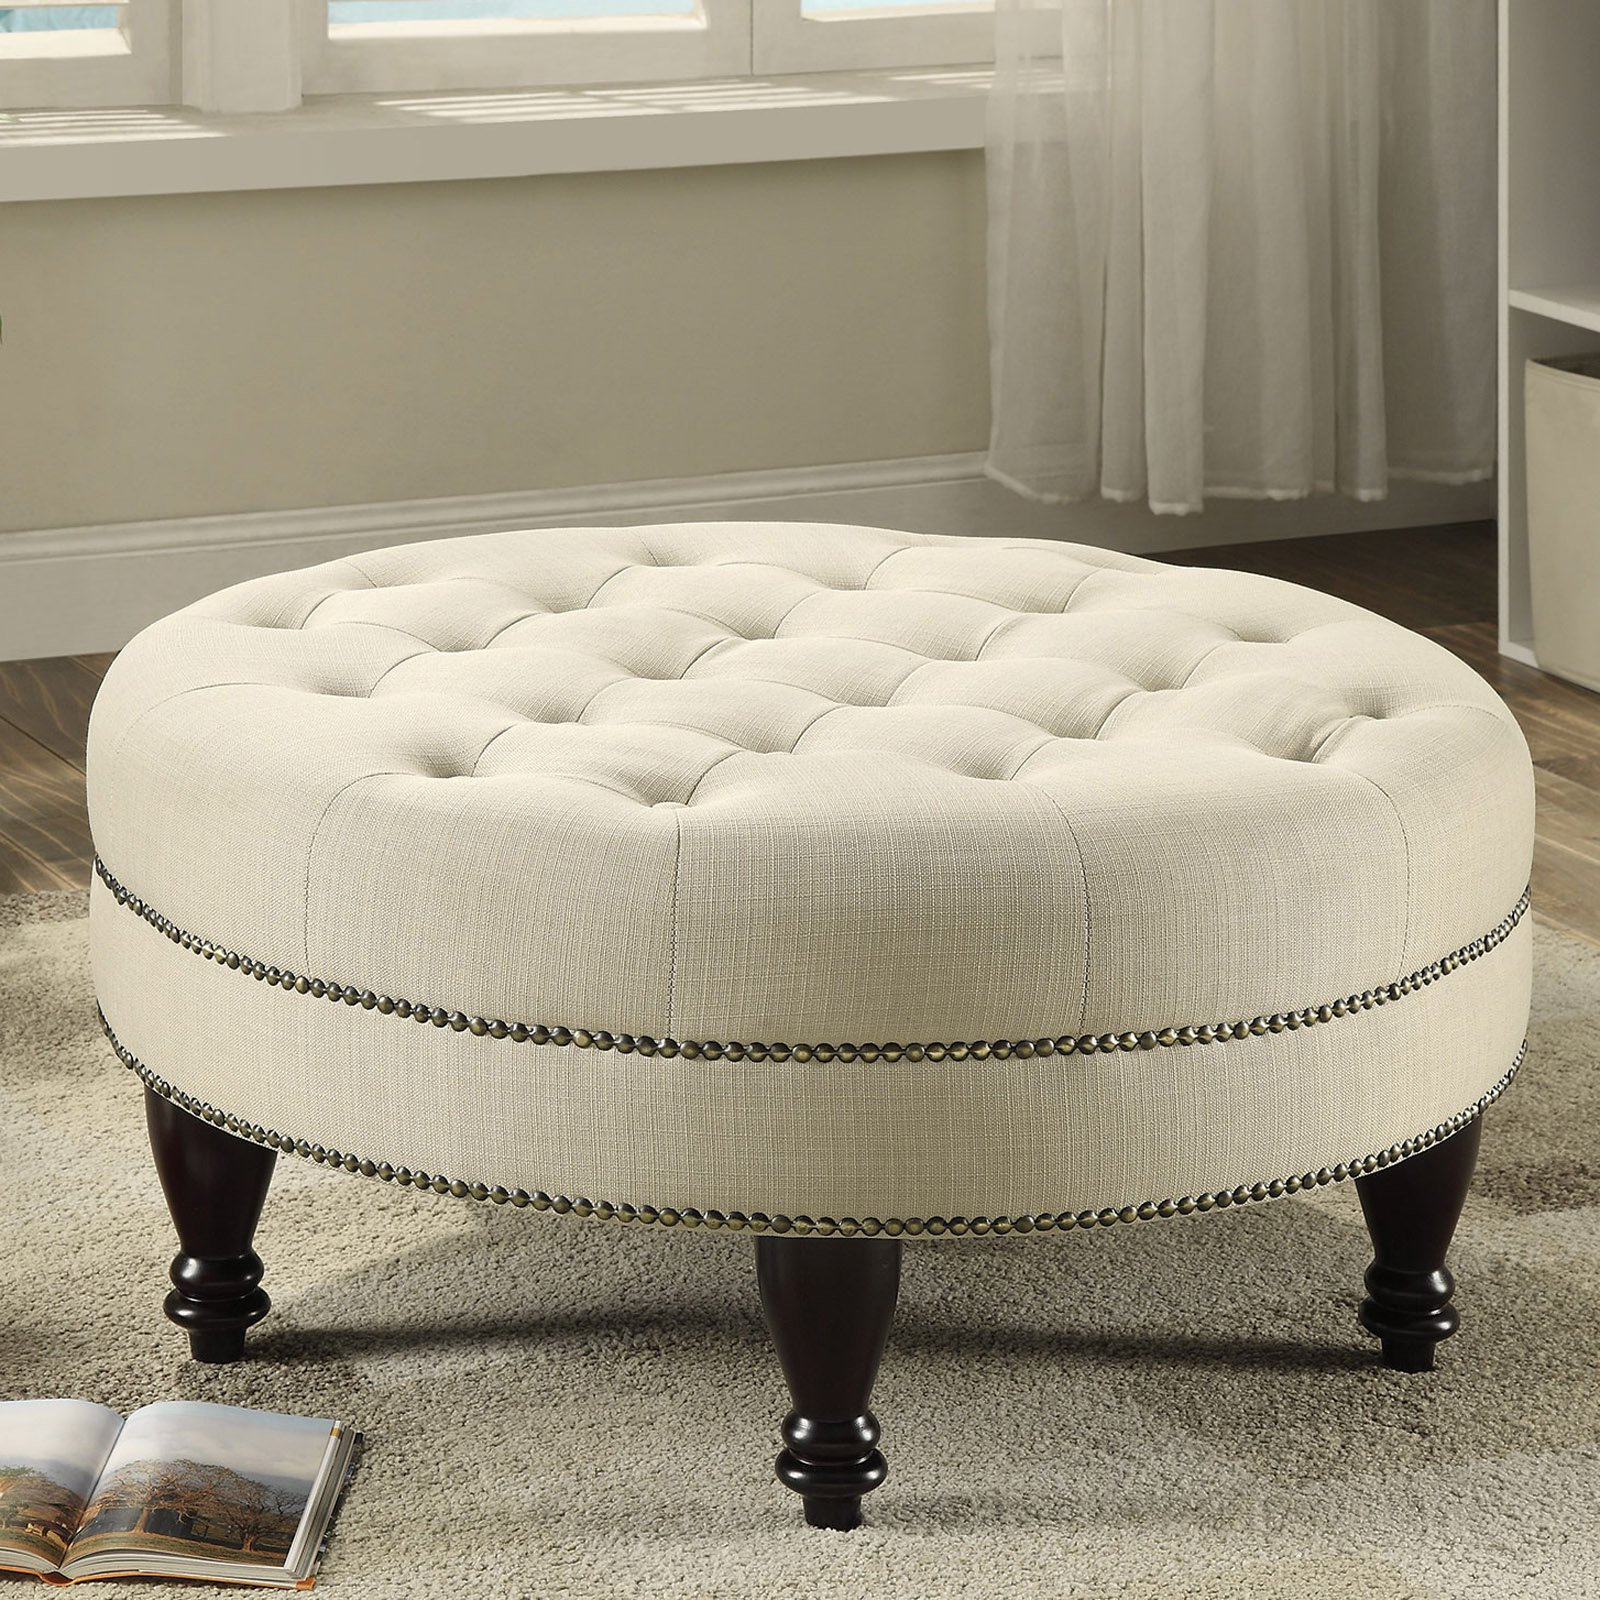 Coaster Company Oval Ottoman in Oatmeal Color Linen-Like Fabric